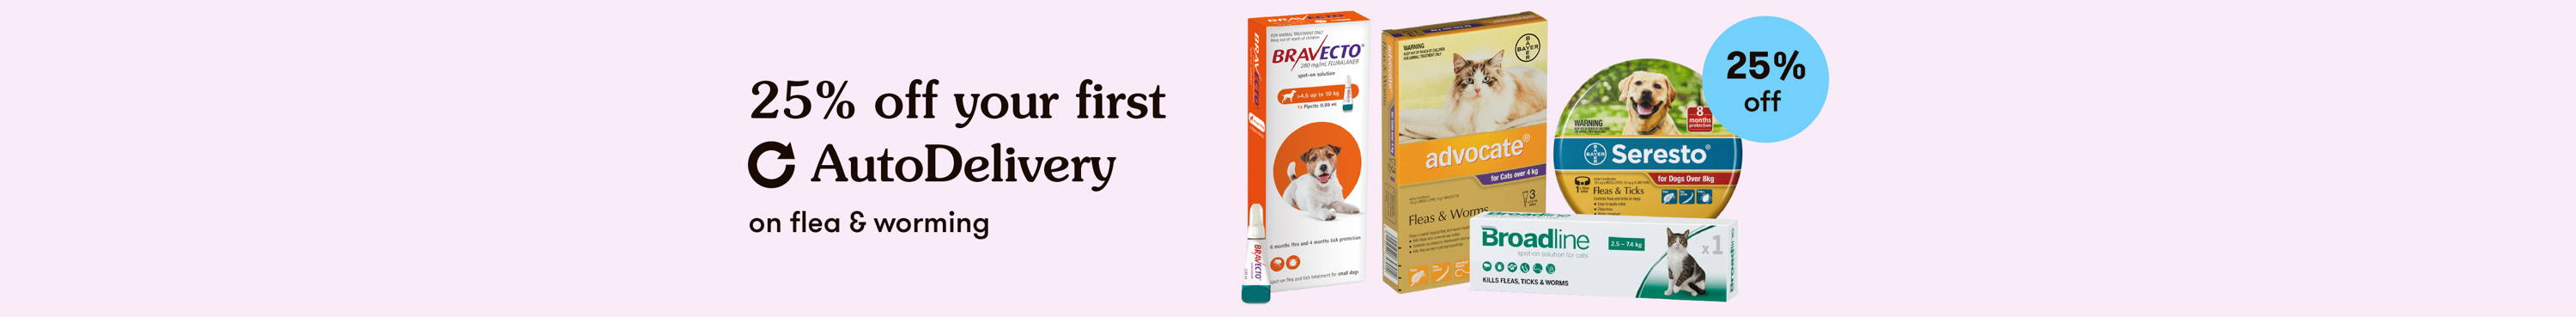 25% off first AutoDelivery of Flea and Worm treatment